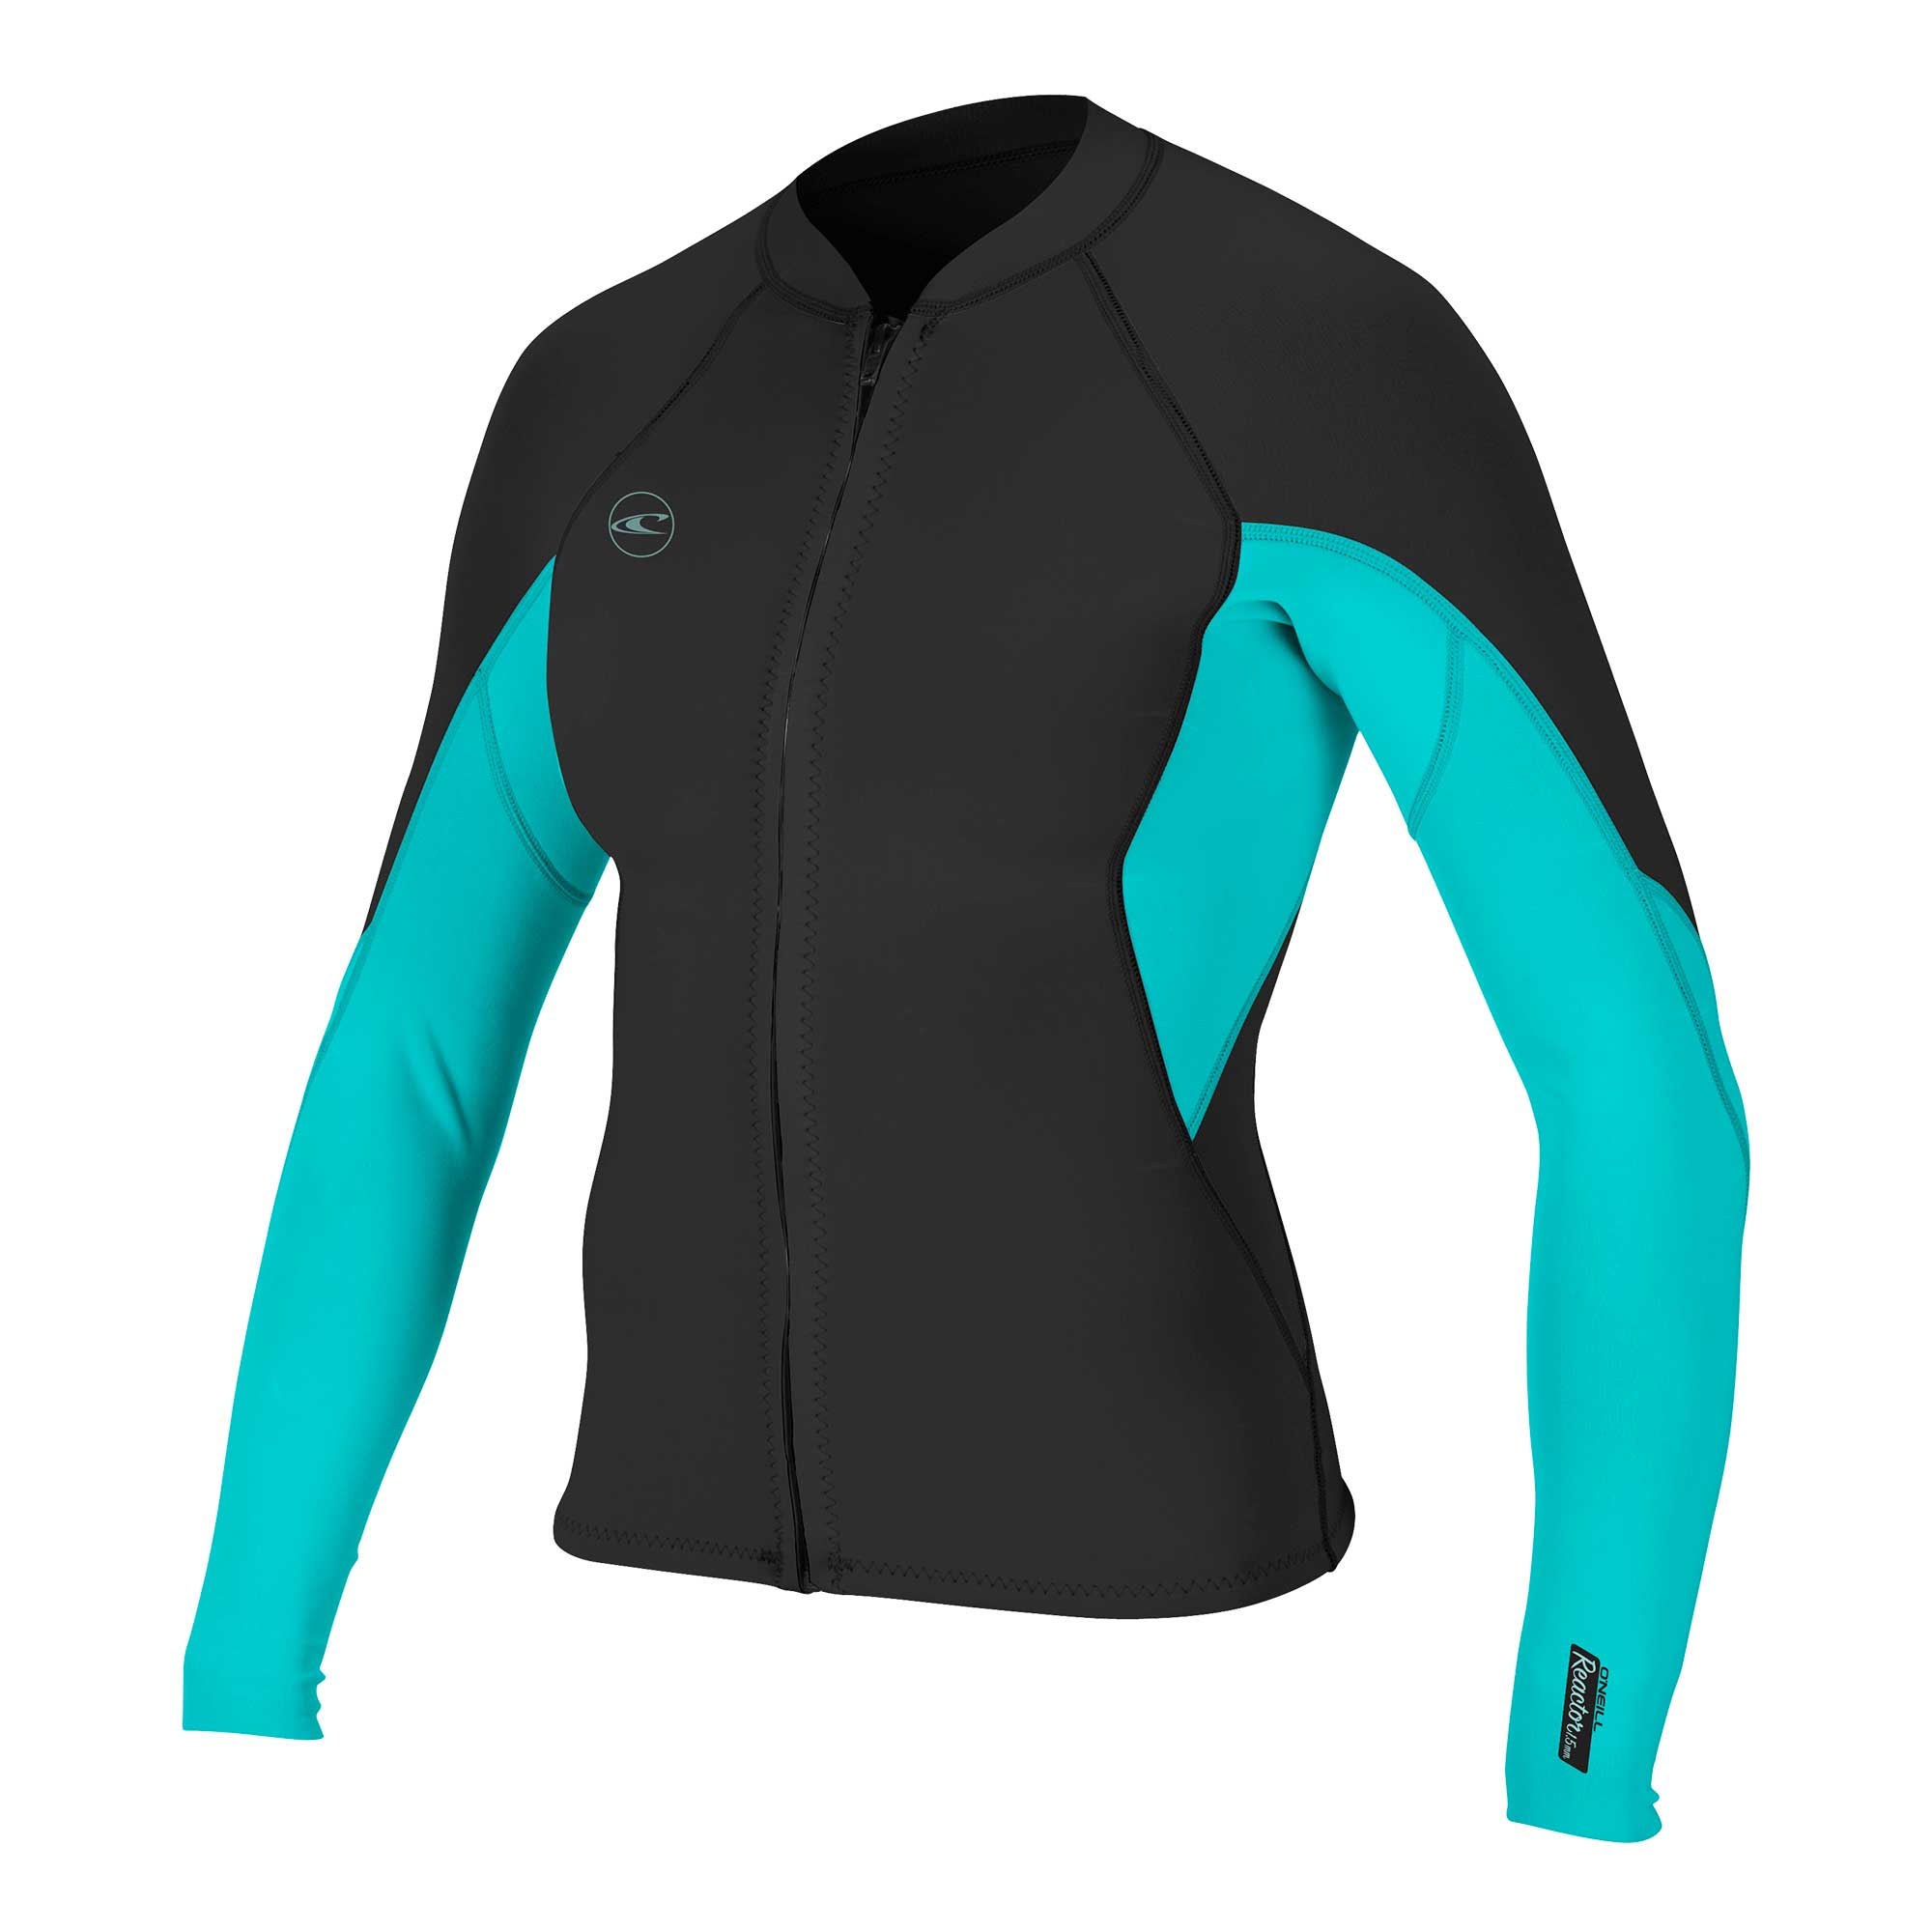 O'Neill Women's Reactor 2 1.5MM Jacket - 88 Gear